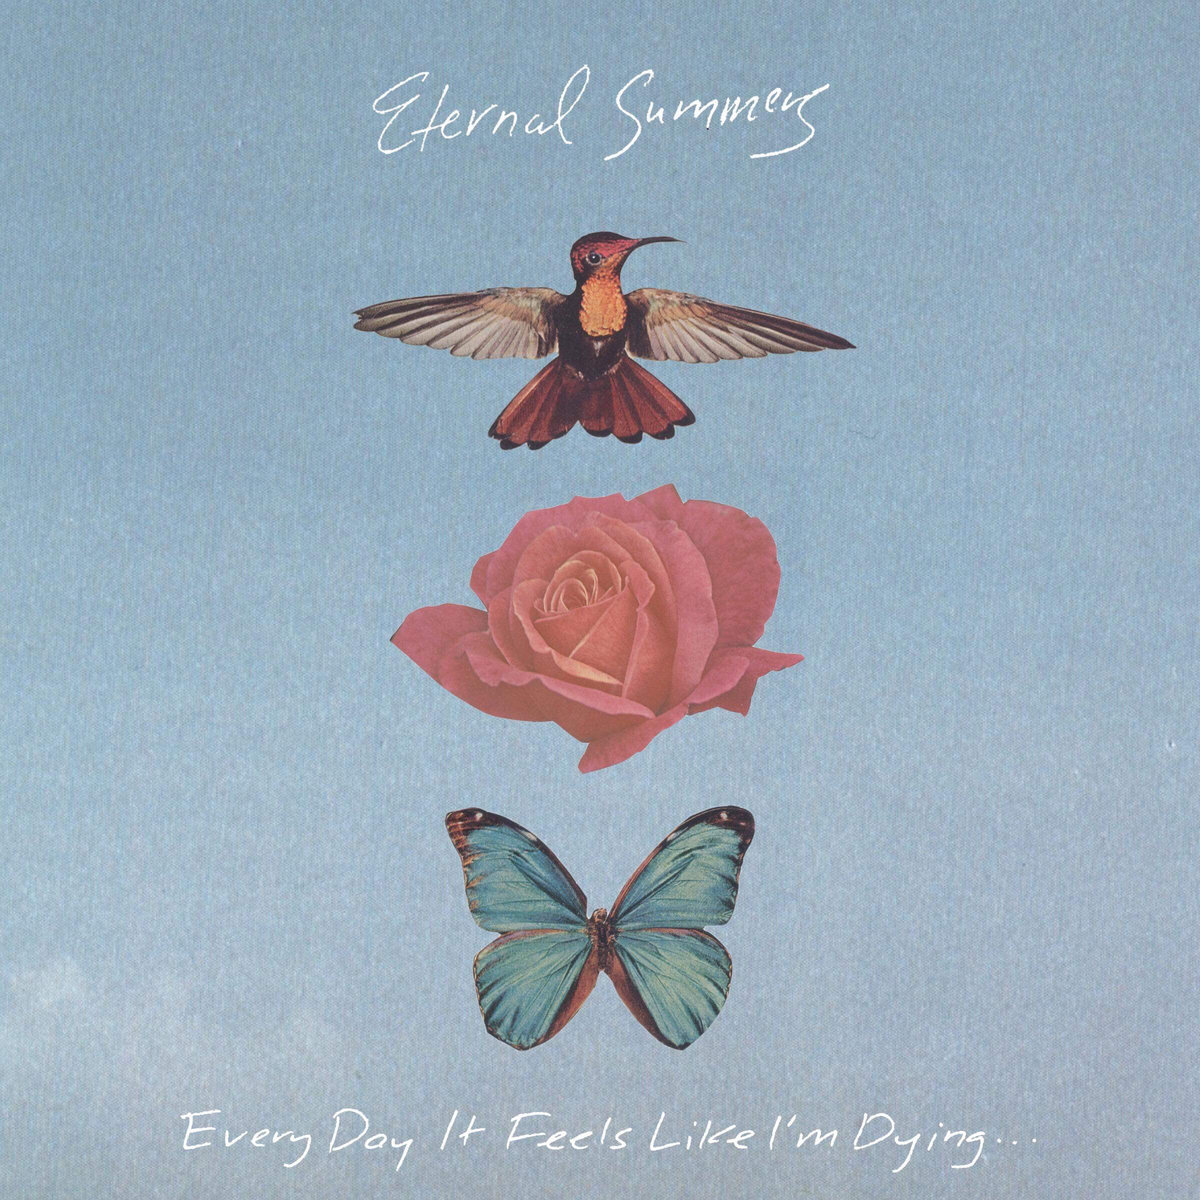 Eternal Summers / Every Day It Feels Like I'm Dying… (200 Ltd LP)